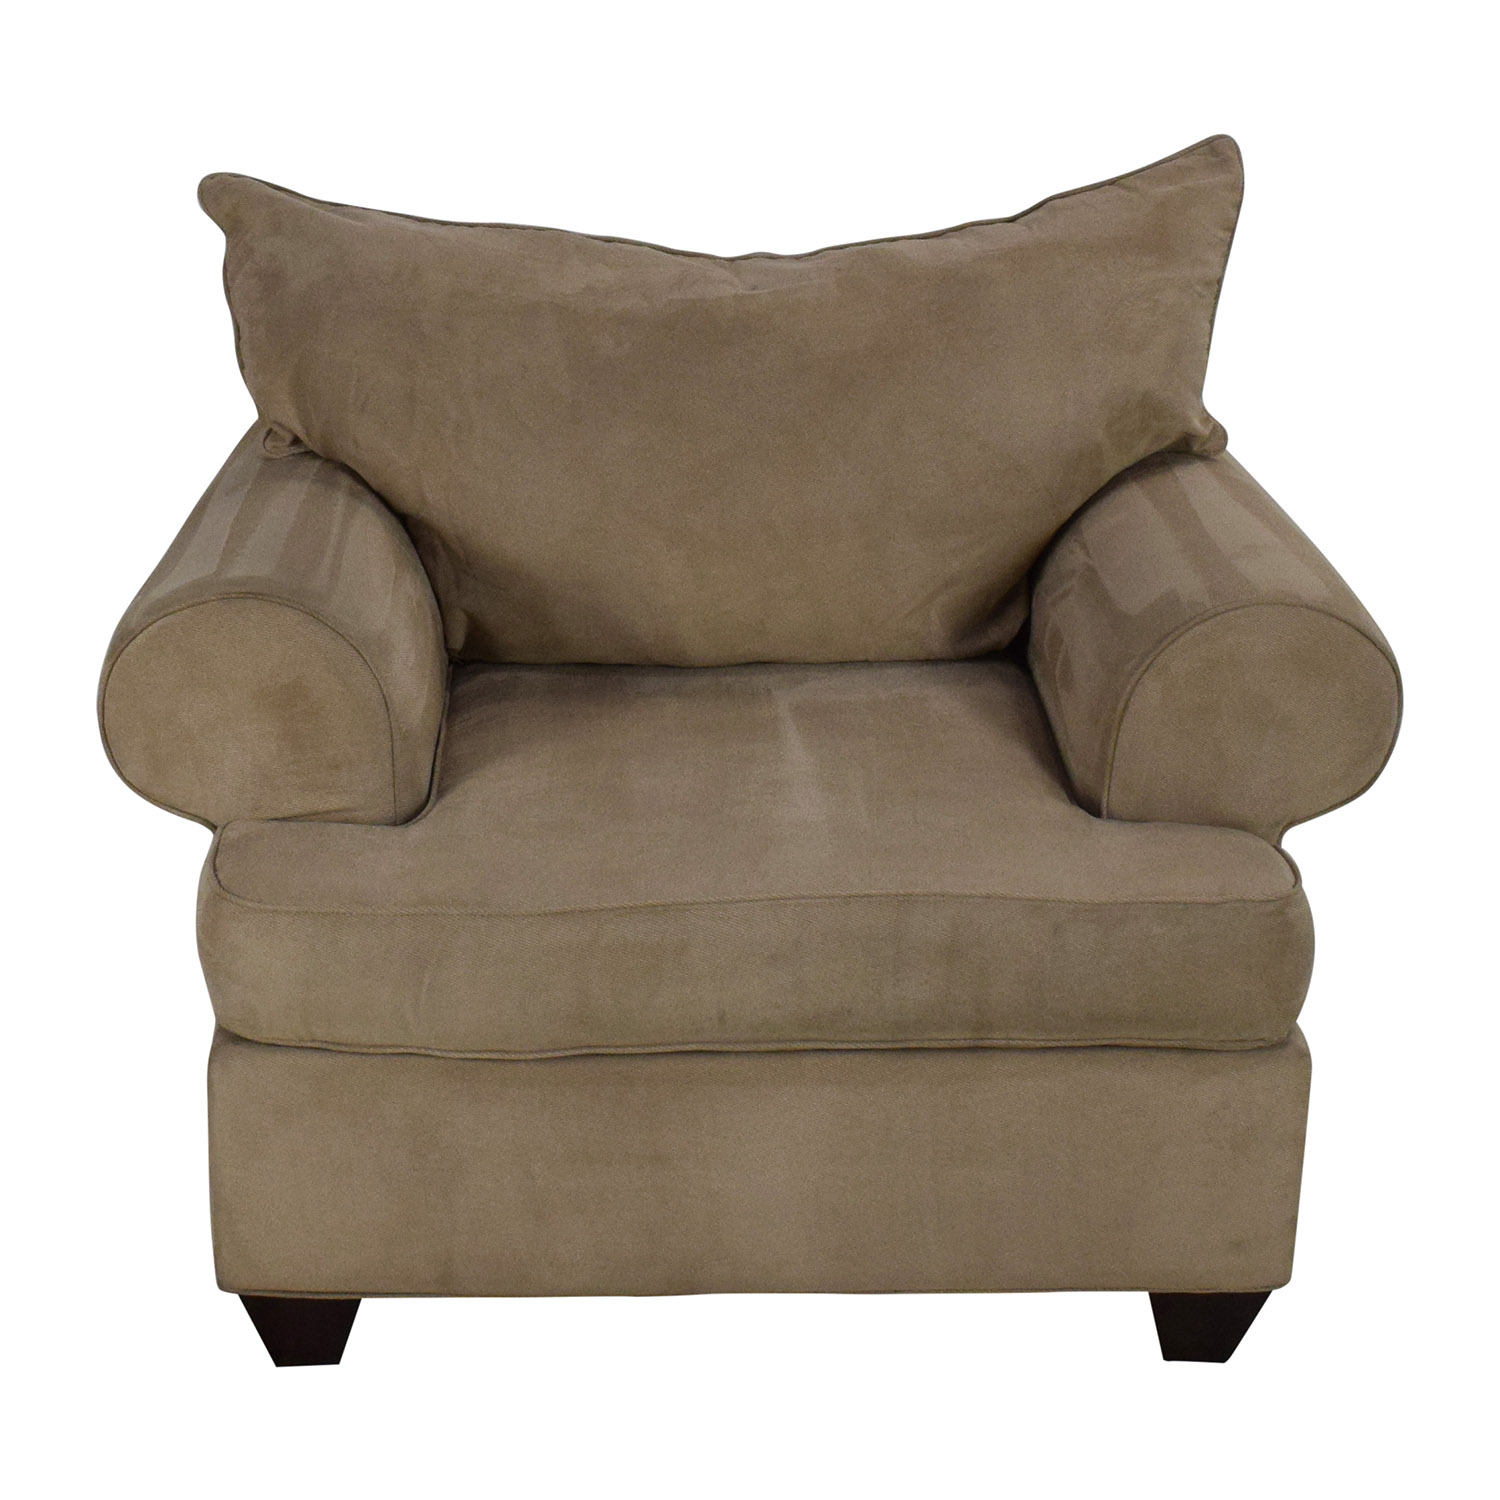 Raymour and Flanigan Raymour & Flanigan Vegas Microfiber Chair price